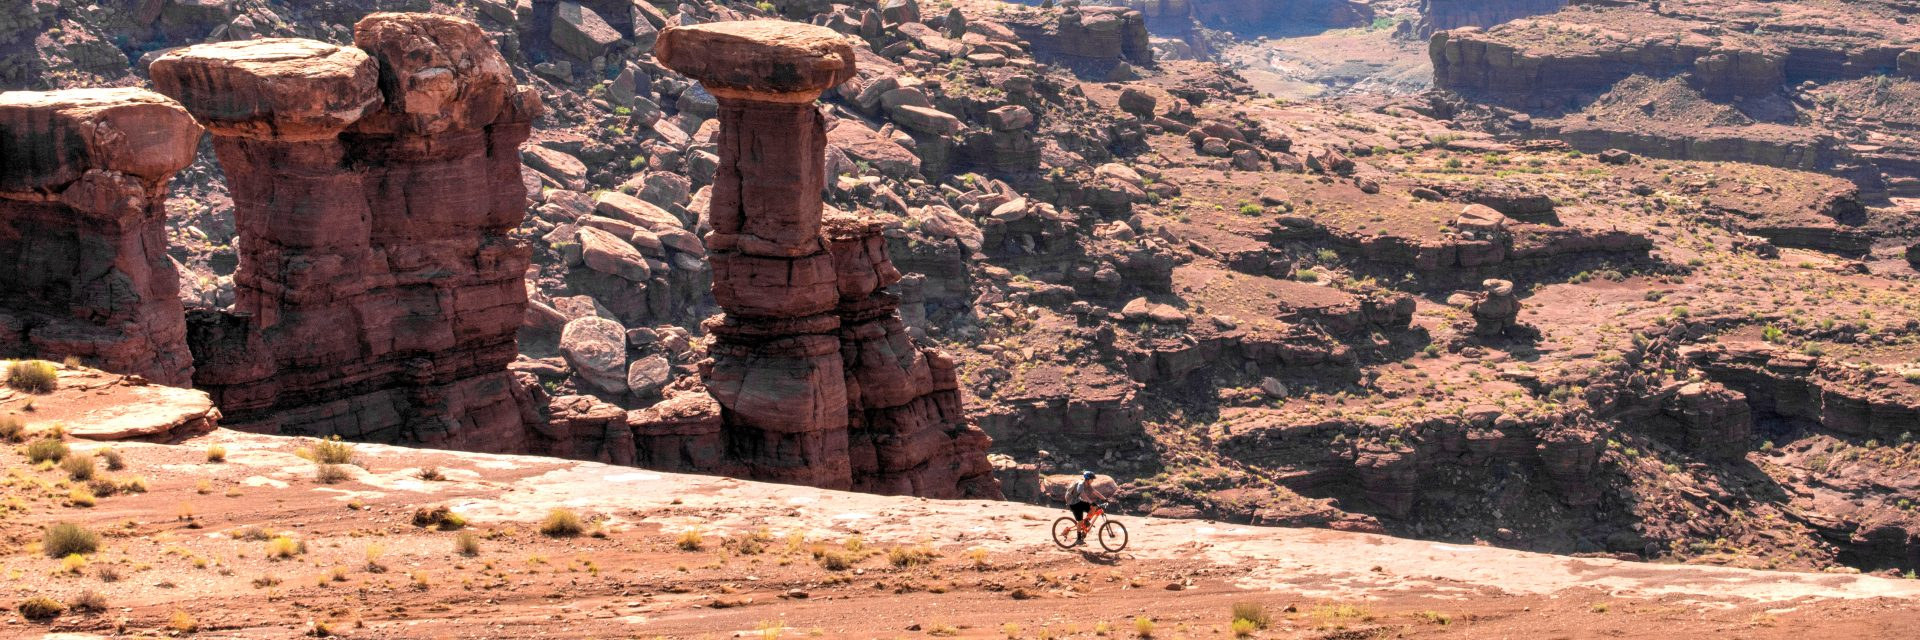 Lone rider skirts the edge of White Rim, Canyonlands NP, Moab UT